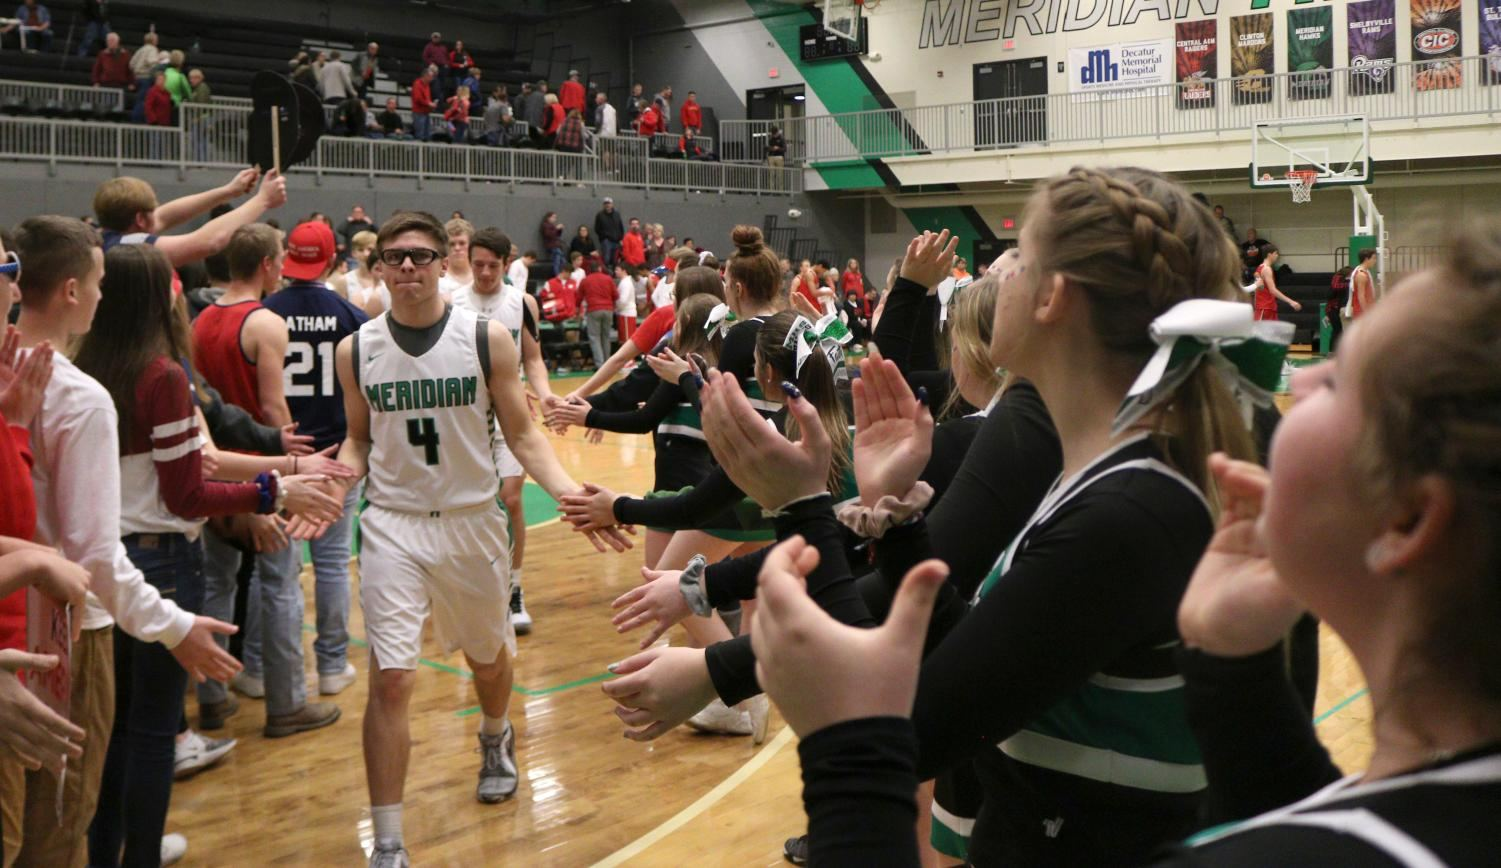 After the loss against ALAH, Meridian slapped hands with the other team in good sportsmanlike behavior.